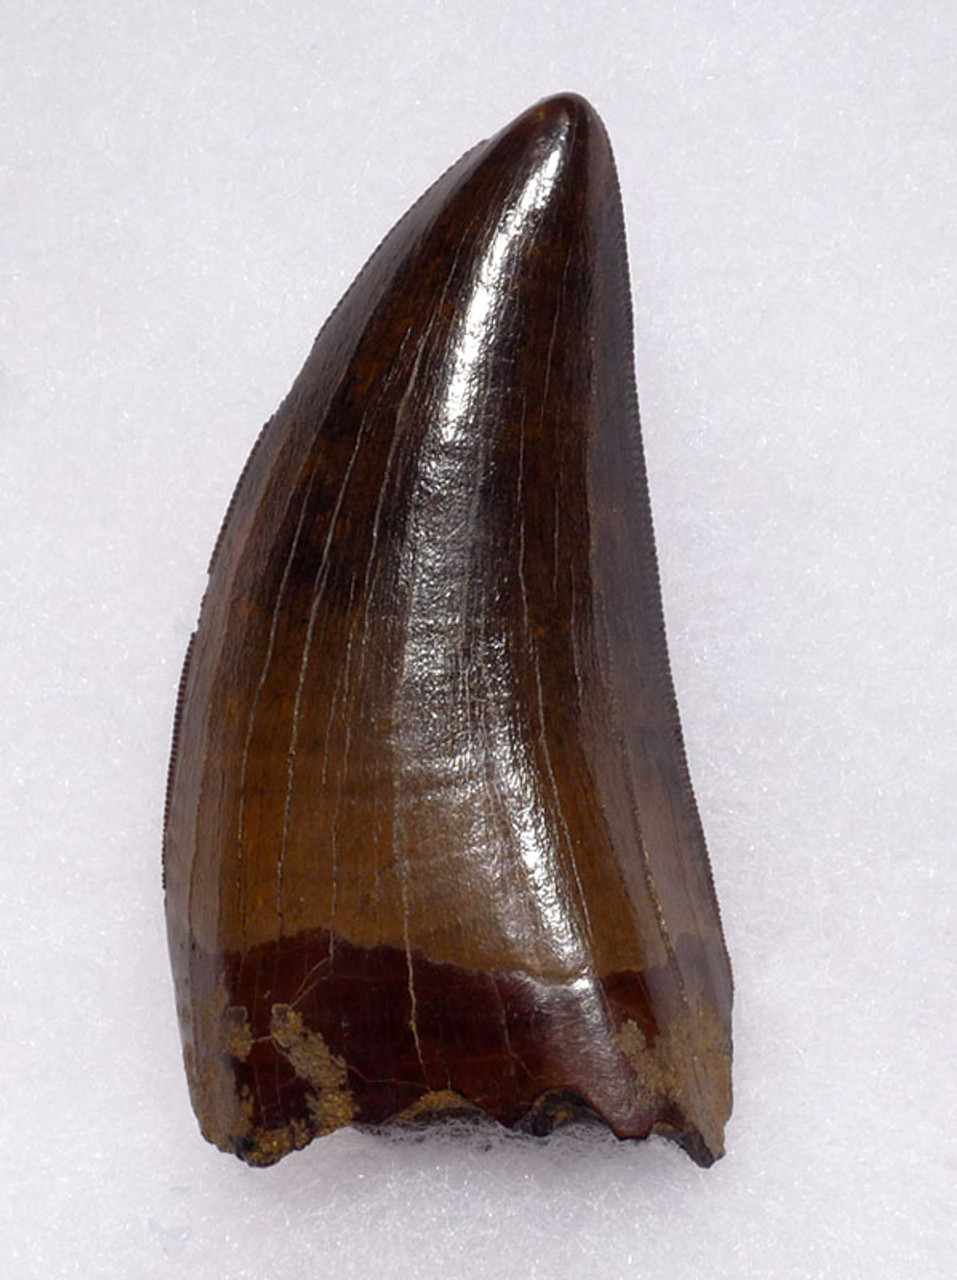 DT18-115 - ULTRA RARE 2.75 INCH INVESTMENT GRADE TYRANNOSAURUS REX TOOTH WITH NO REPAIR